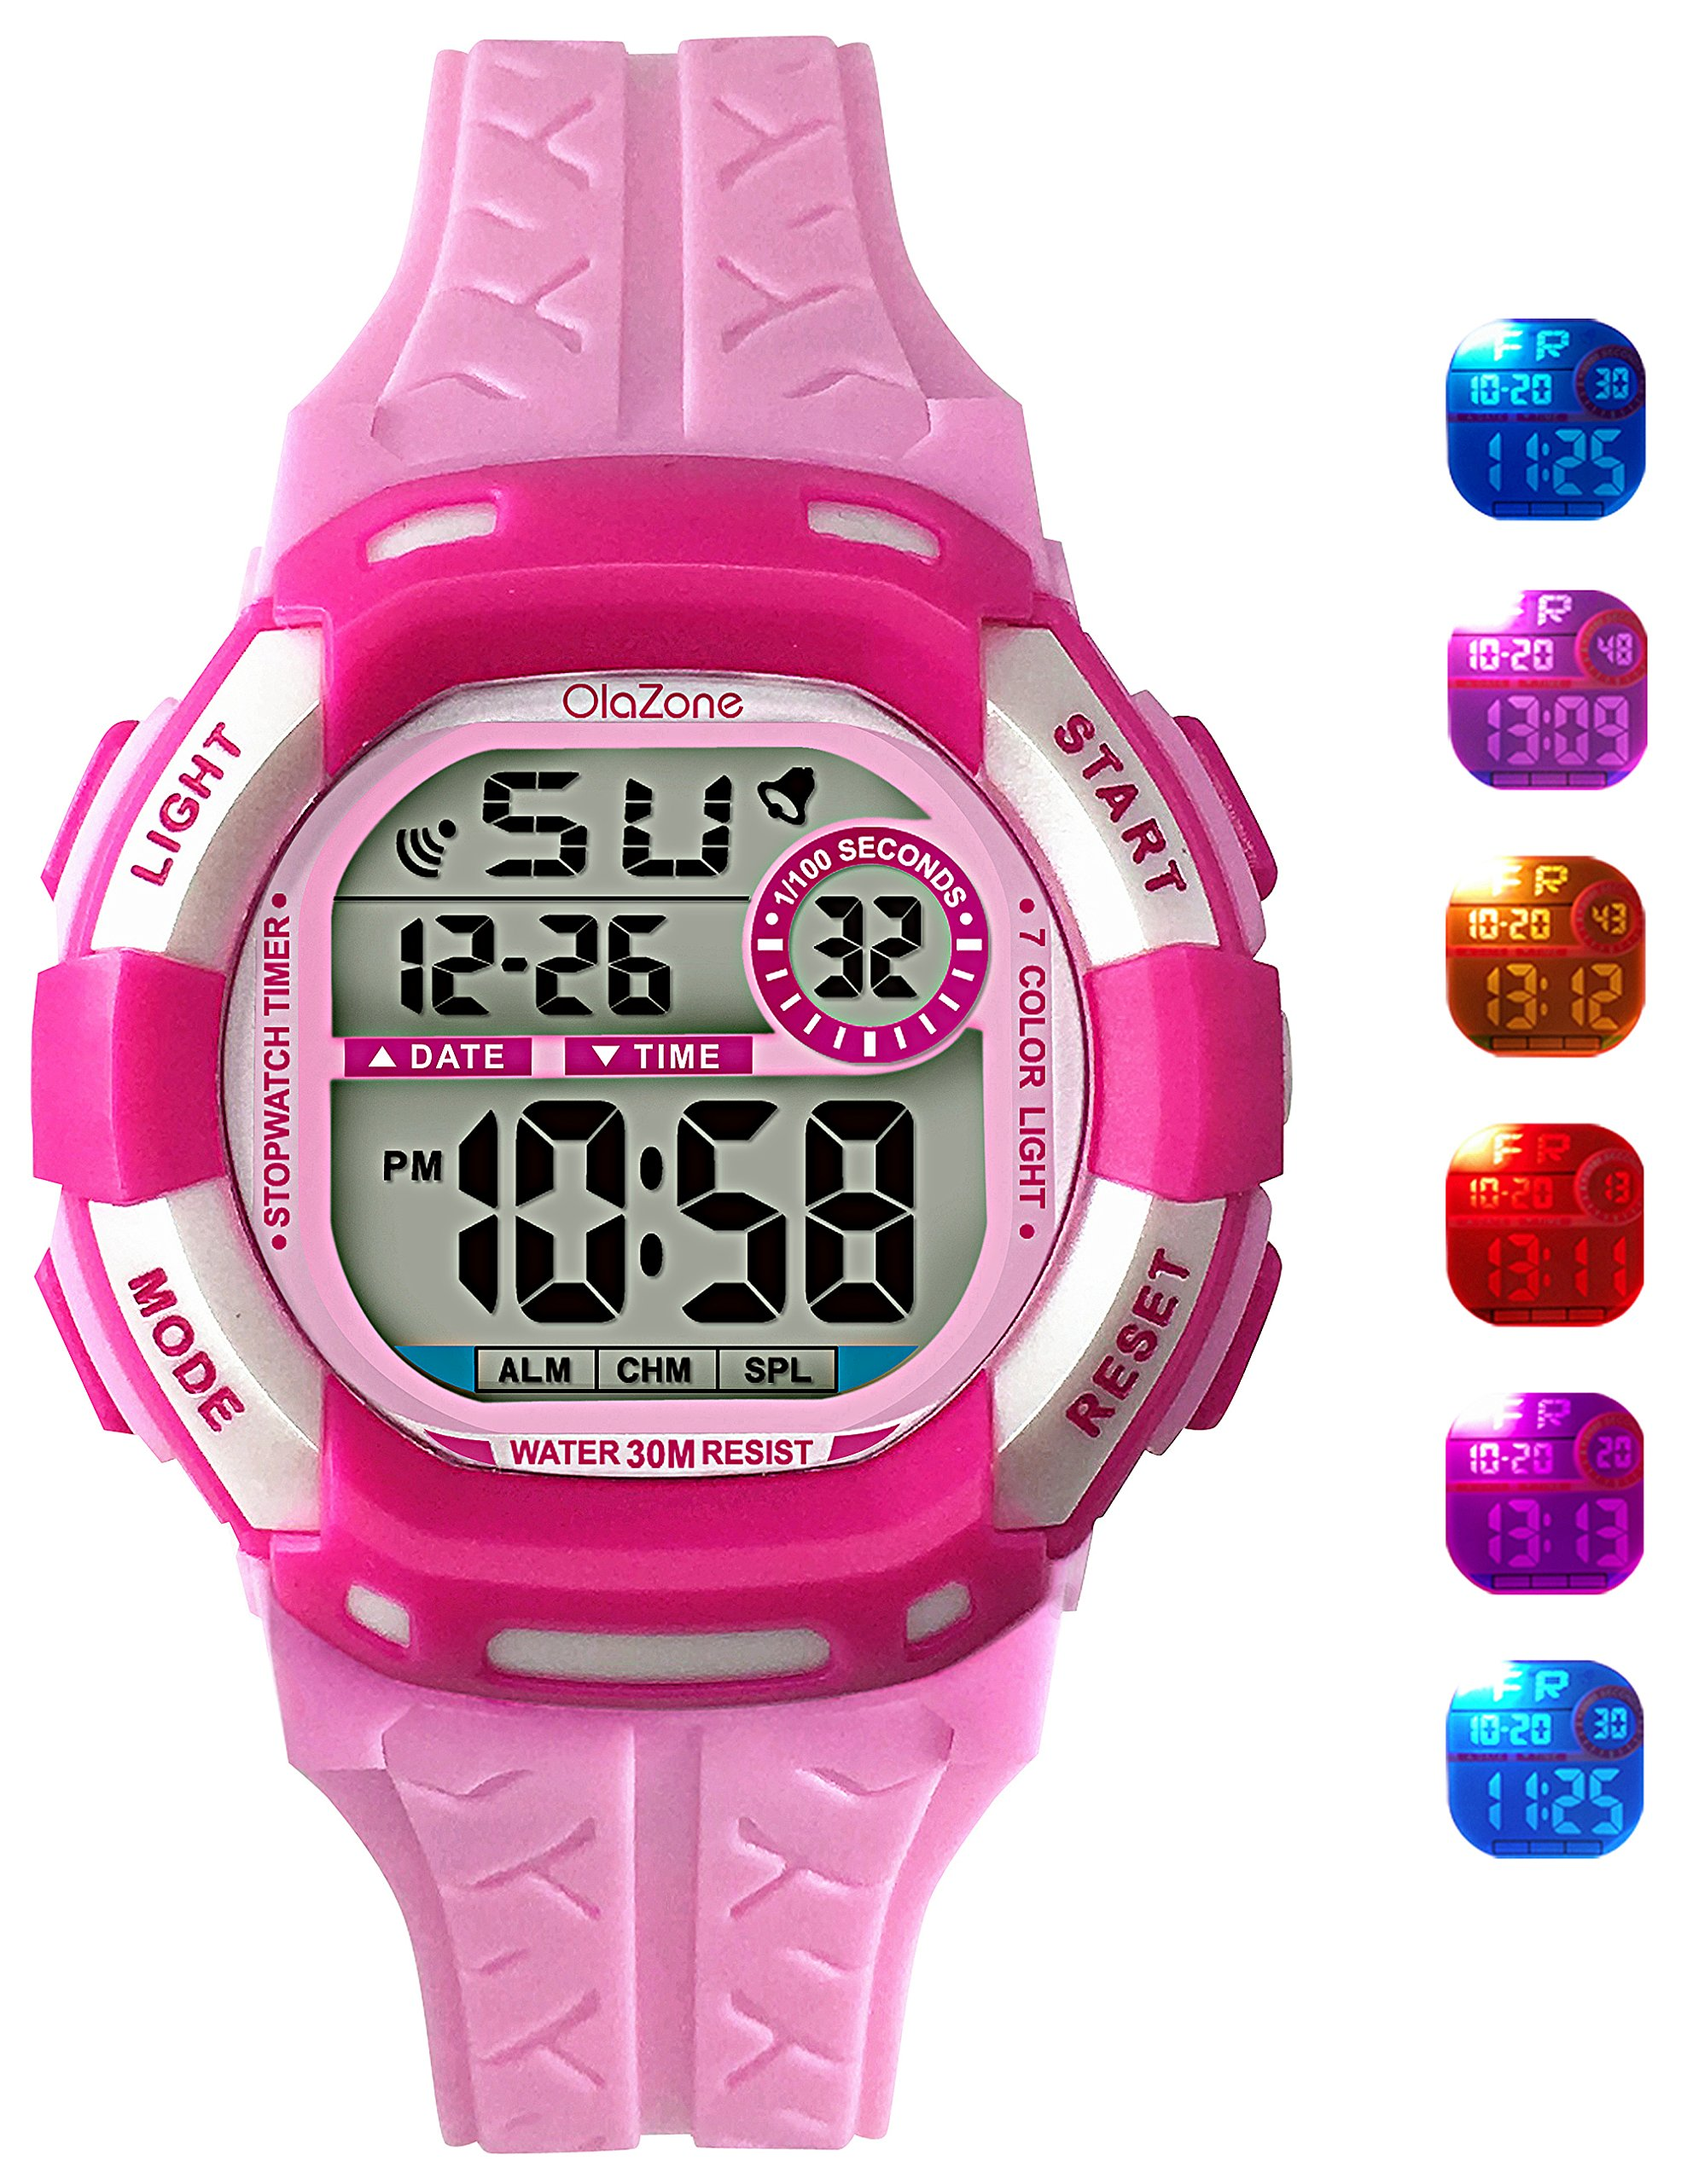 Kids Watch Grils Digital 7-Color Flashing Light Water Resistant 100FT Alarm Watch for Age 4-10 (Pink)